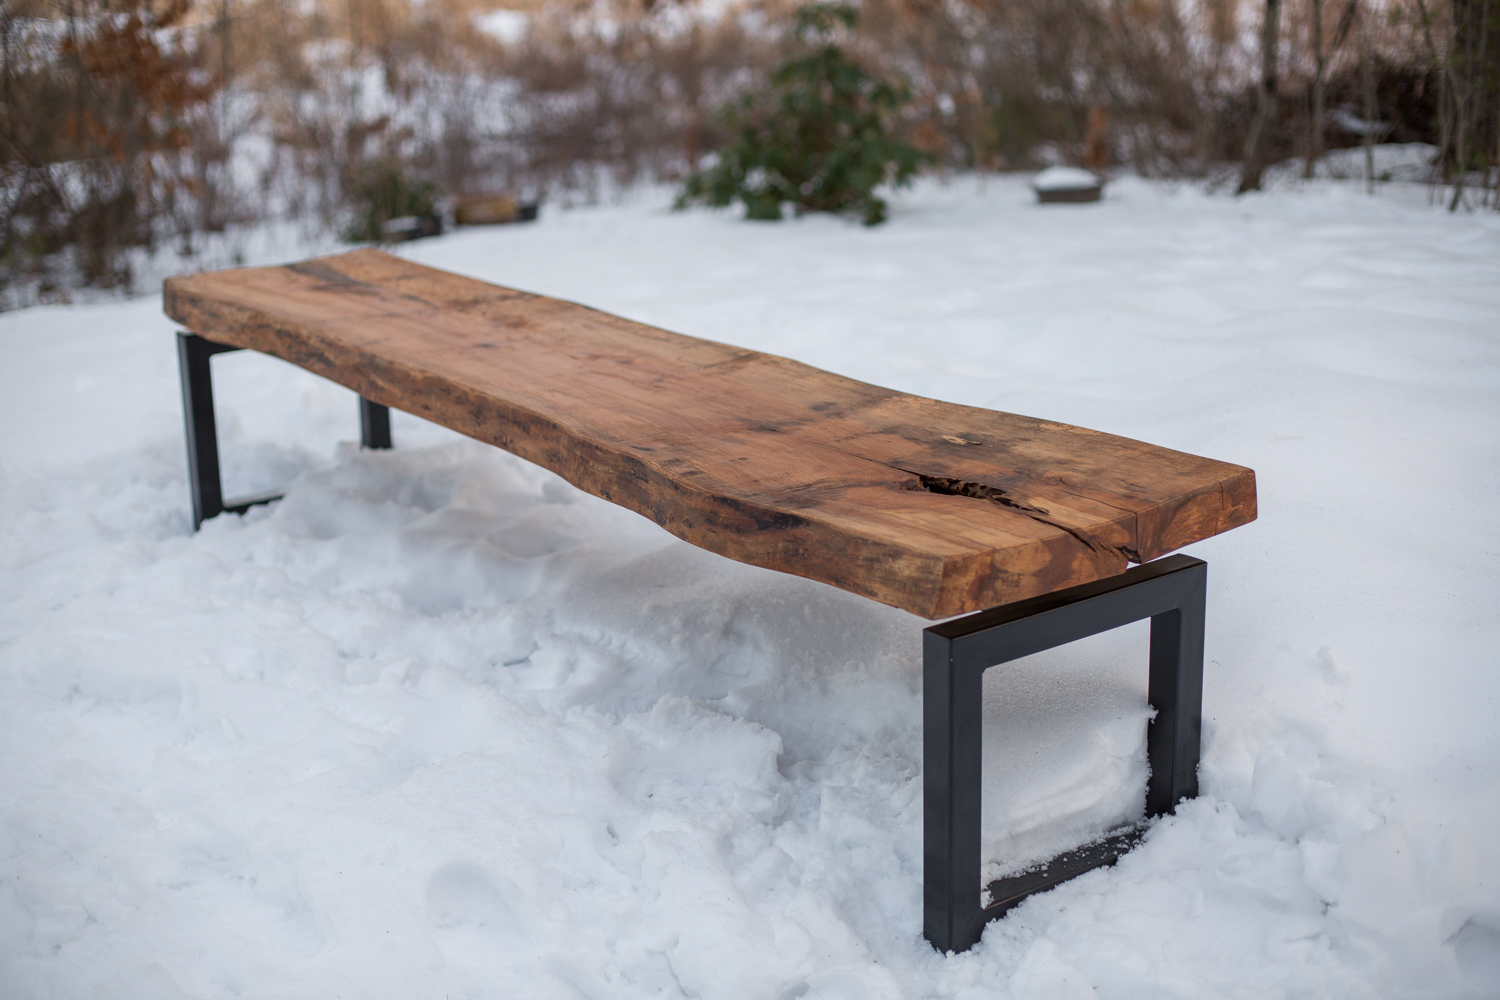 Liveedge Maple and Steel Bench